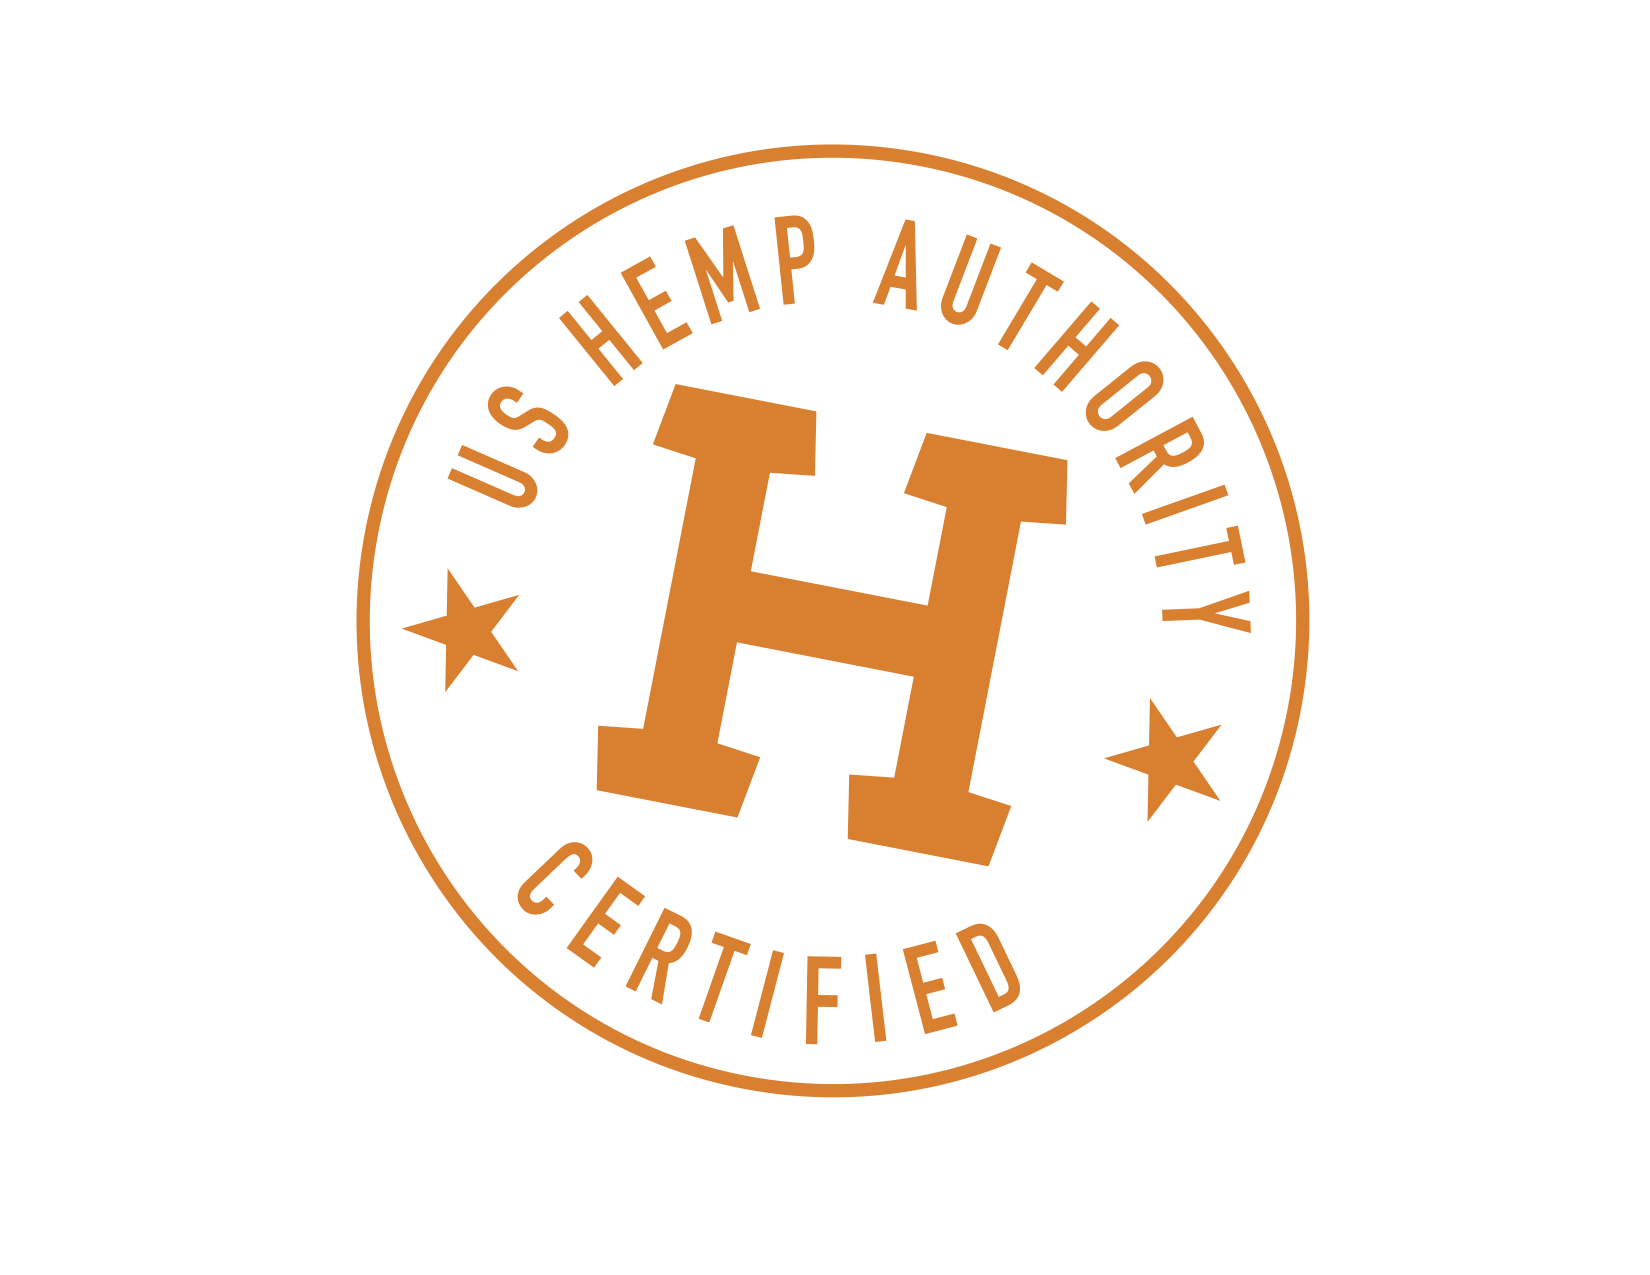 FoodChain ID Announces U.S. Hemp Authority® Certification Standard v. 3.0 Now in Effect